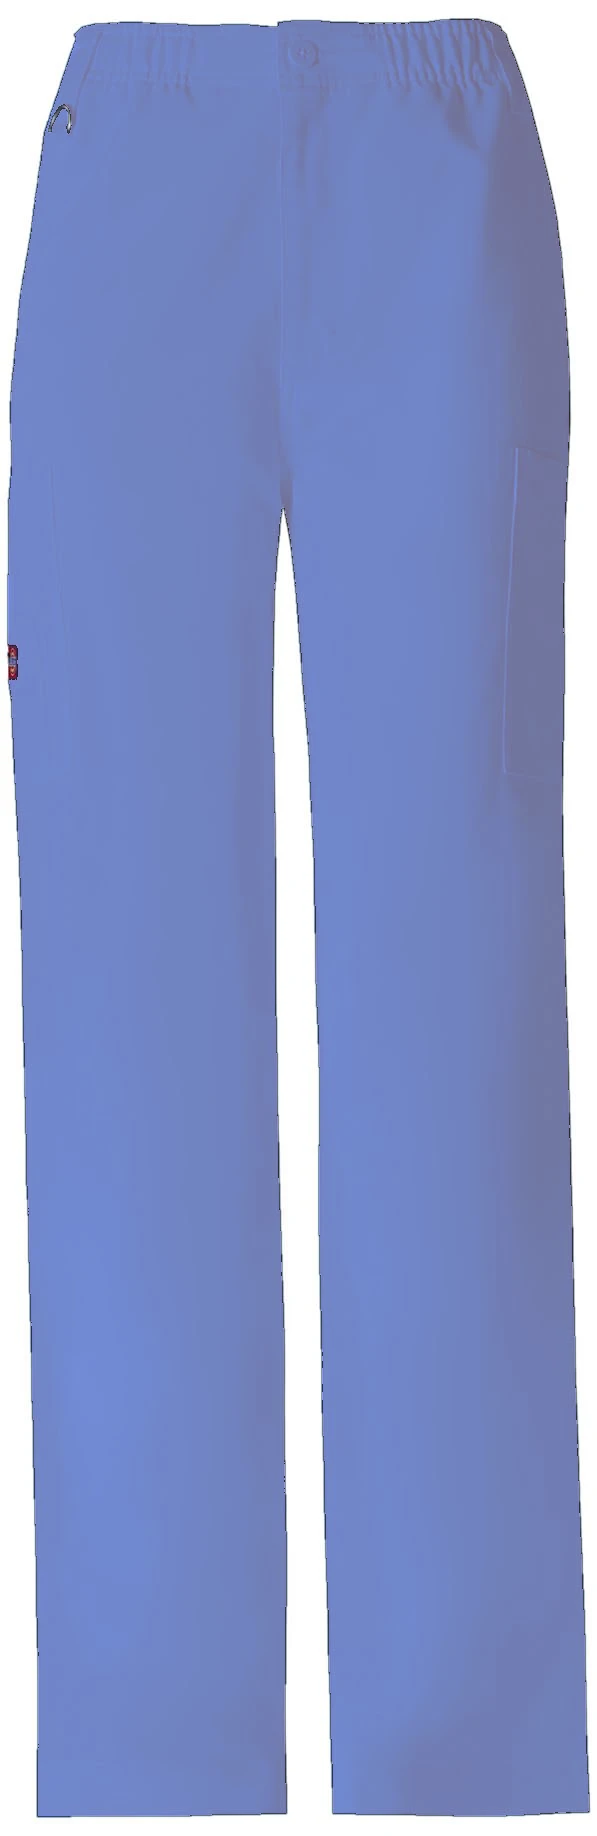 81210 Dickies Xtreme Stretch Mens Scrub Pants